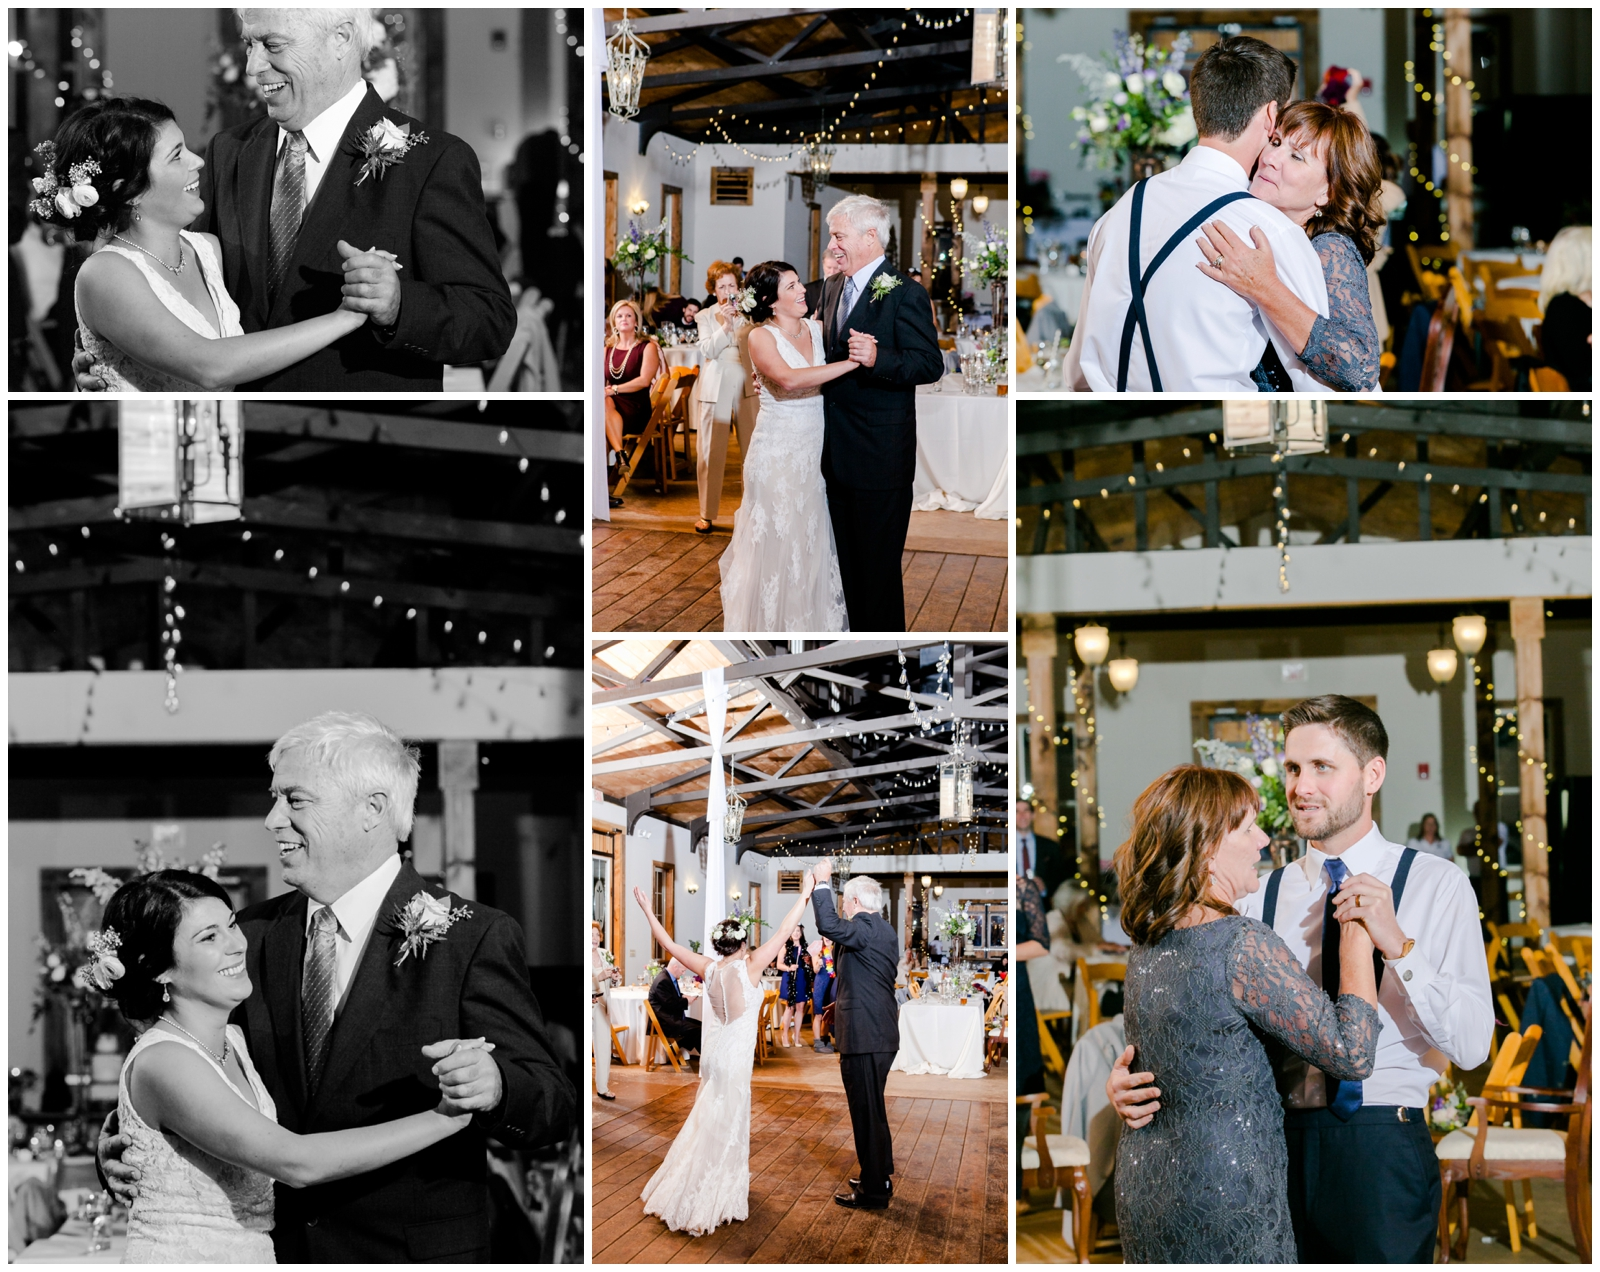 R&G_AtlantaWeddingPhotographer_WhiteOaksBarn_0038